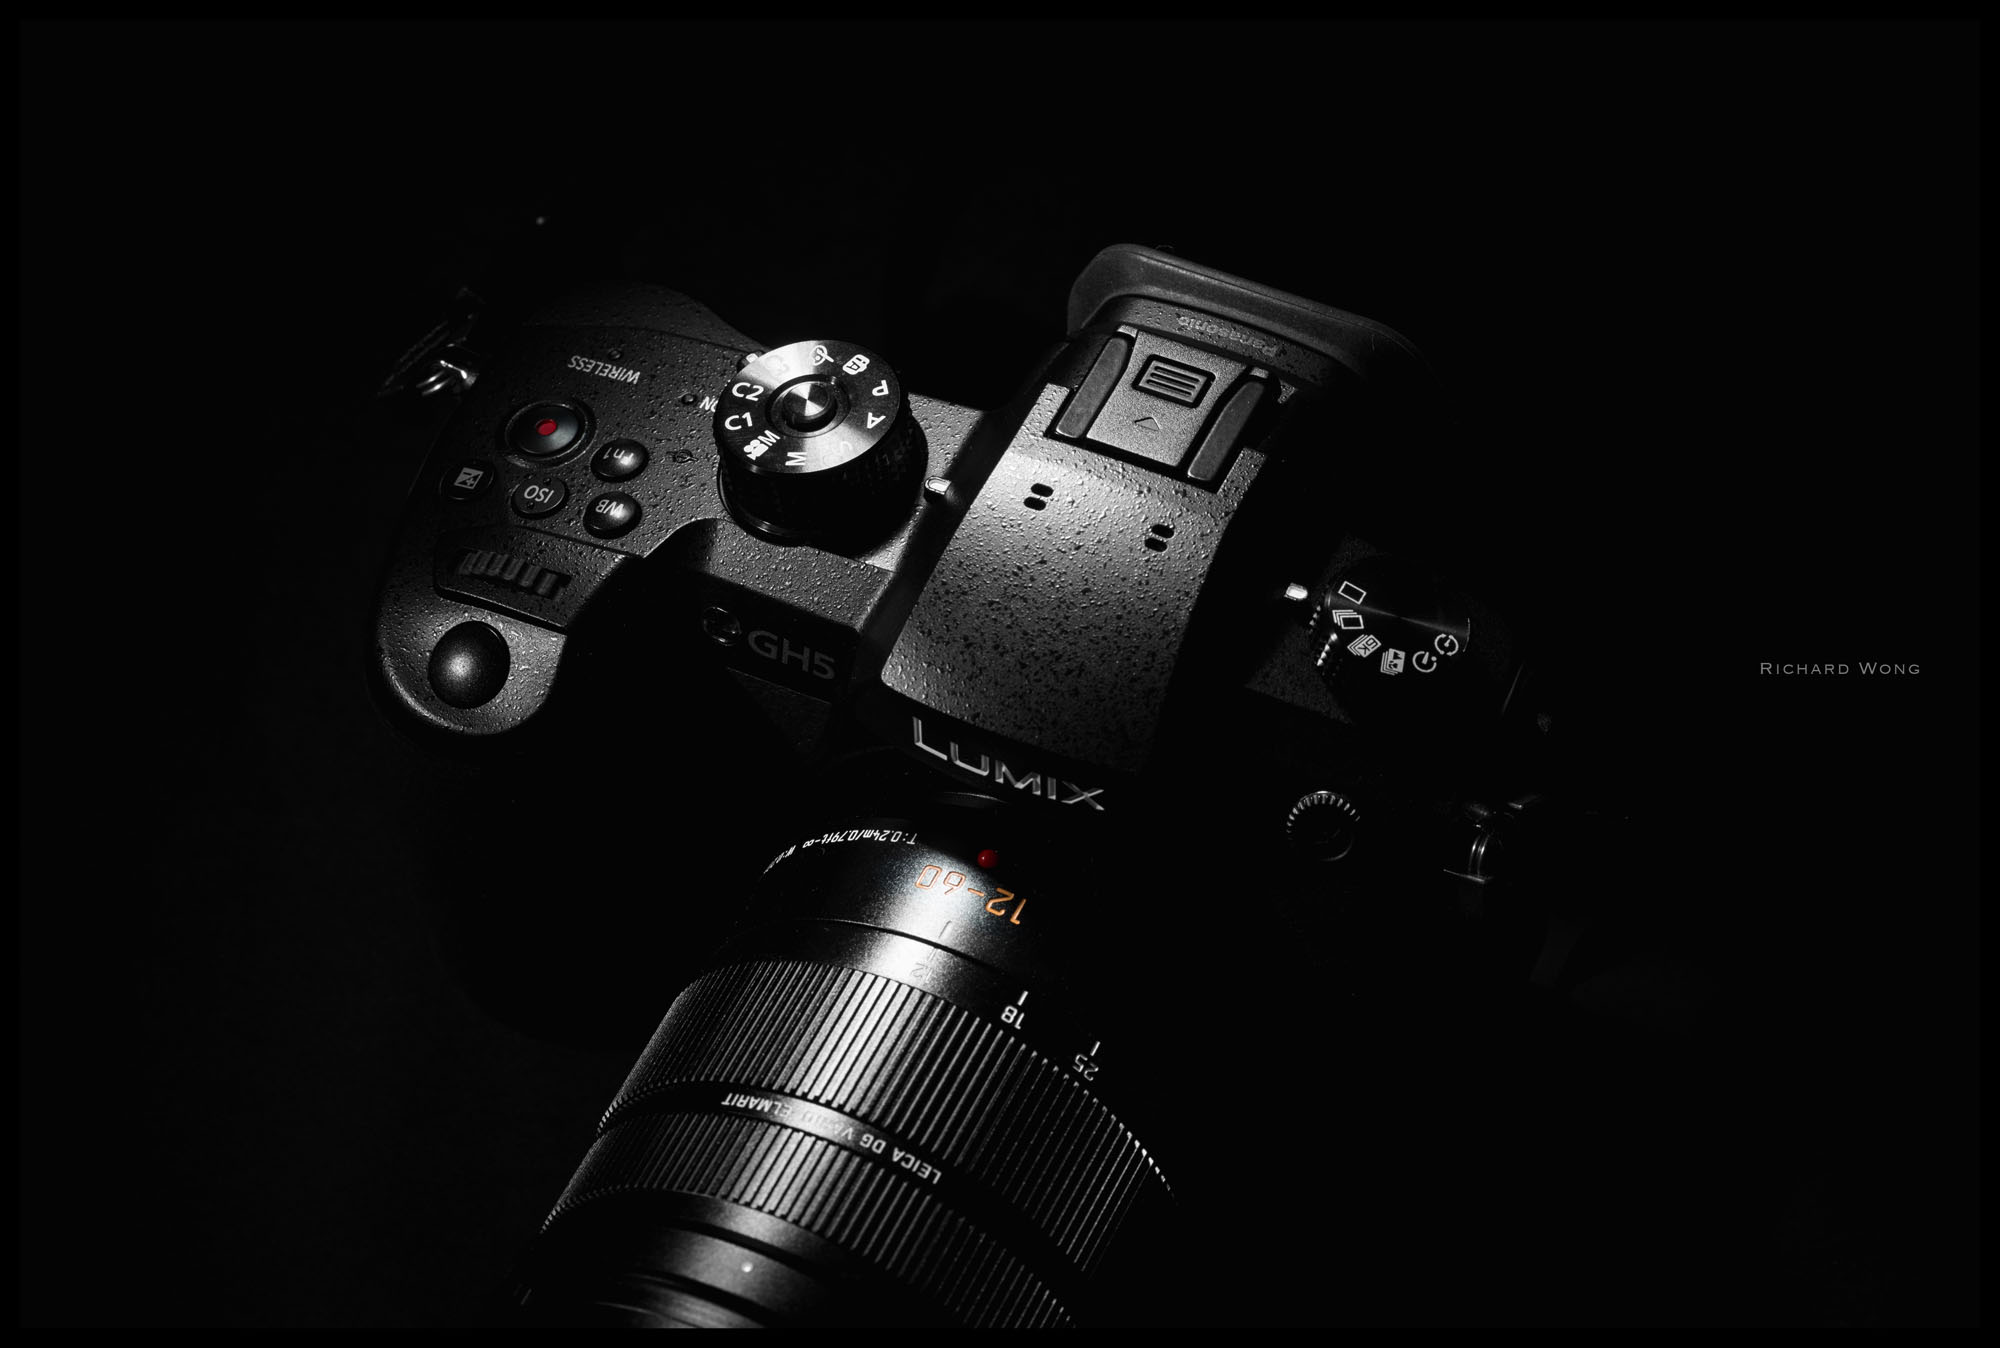 panasonic-gh5-review-01.jpg